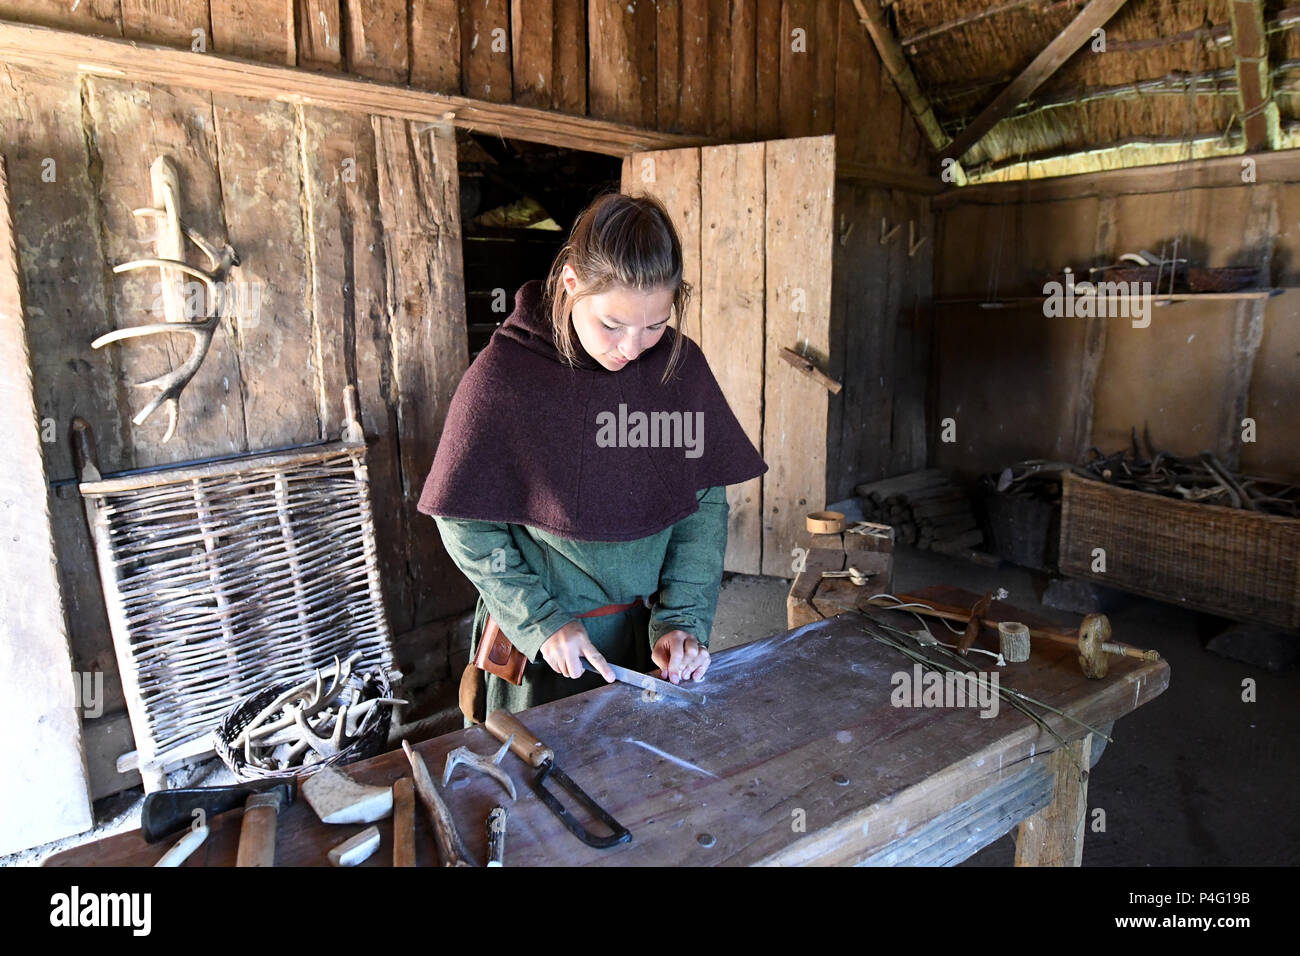 Danewerk, Germany. 19th June, 2018. Intern Caro working on a piece of jewellery in authentic Viking clothing on the site of the Viking houses in Hedeby. The UNESCO world heritage committee will decide on the admission of new monuments to its list at a session between the 24 June and 3 July. The Viking sites Hedeby and Danevirke are Germany's applicants. Credit: Carsten Rehder/dpa/Alamy Live News - Stock Image